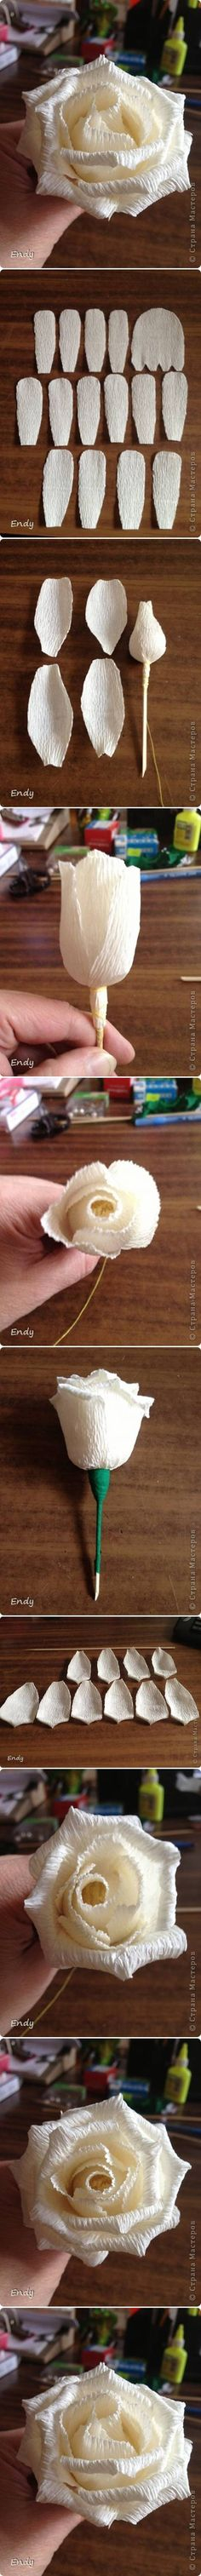 DIY Easy Corrugated Paper Rose DIY Projects